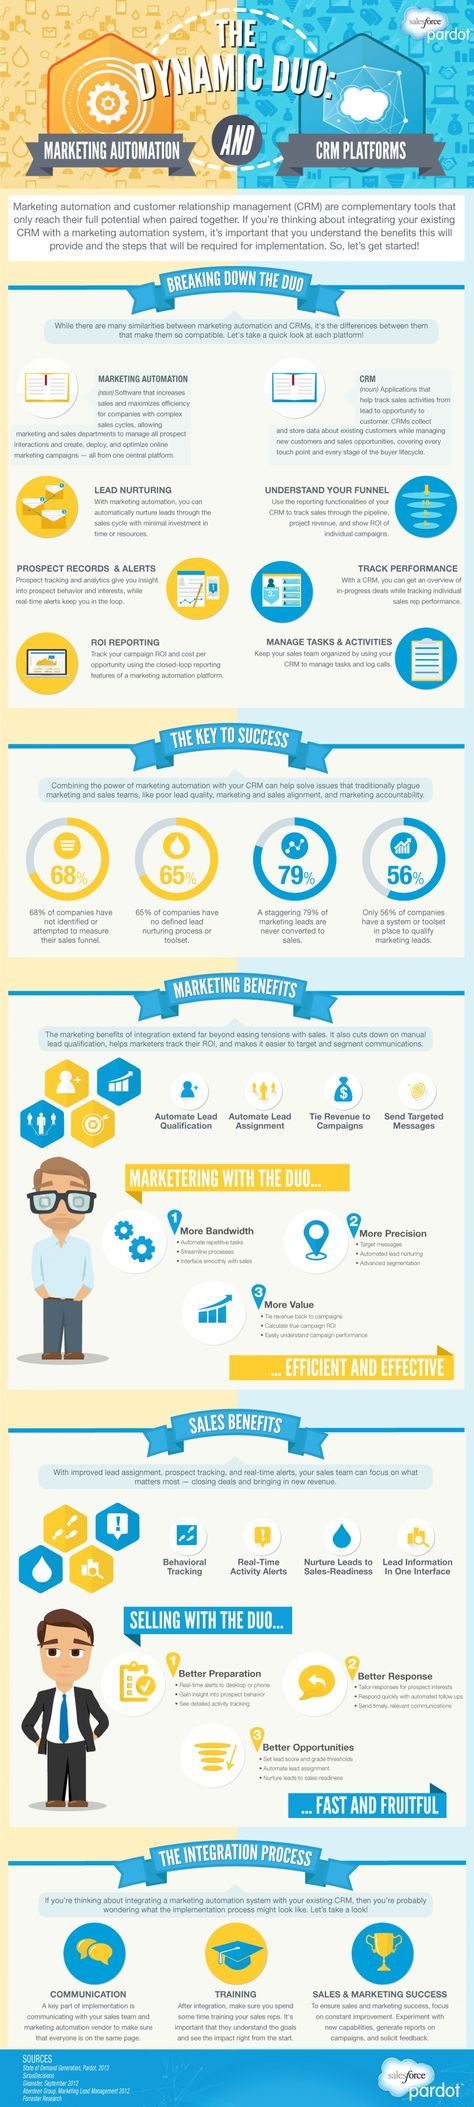 The Dynamic Duo: Marketing Automation & Your CRM